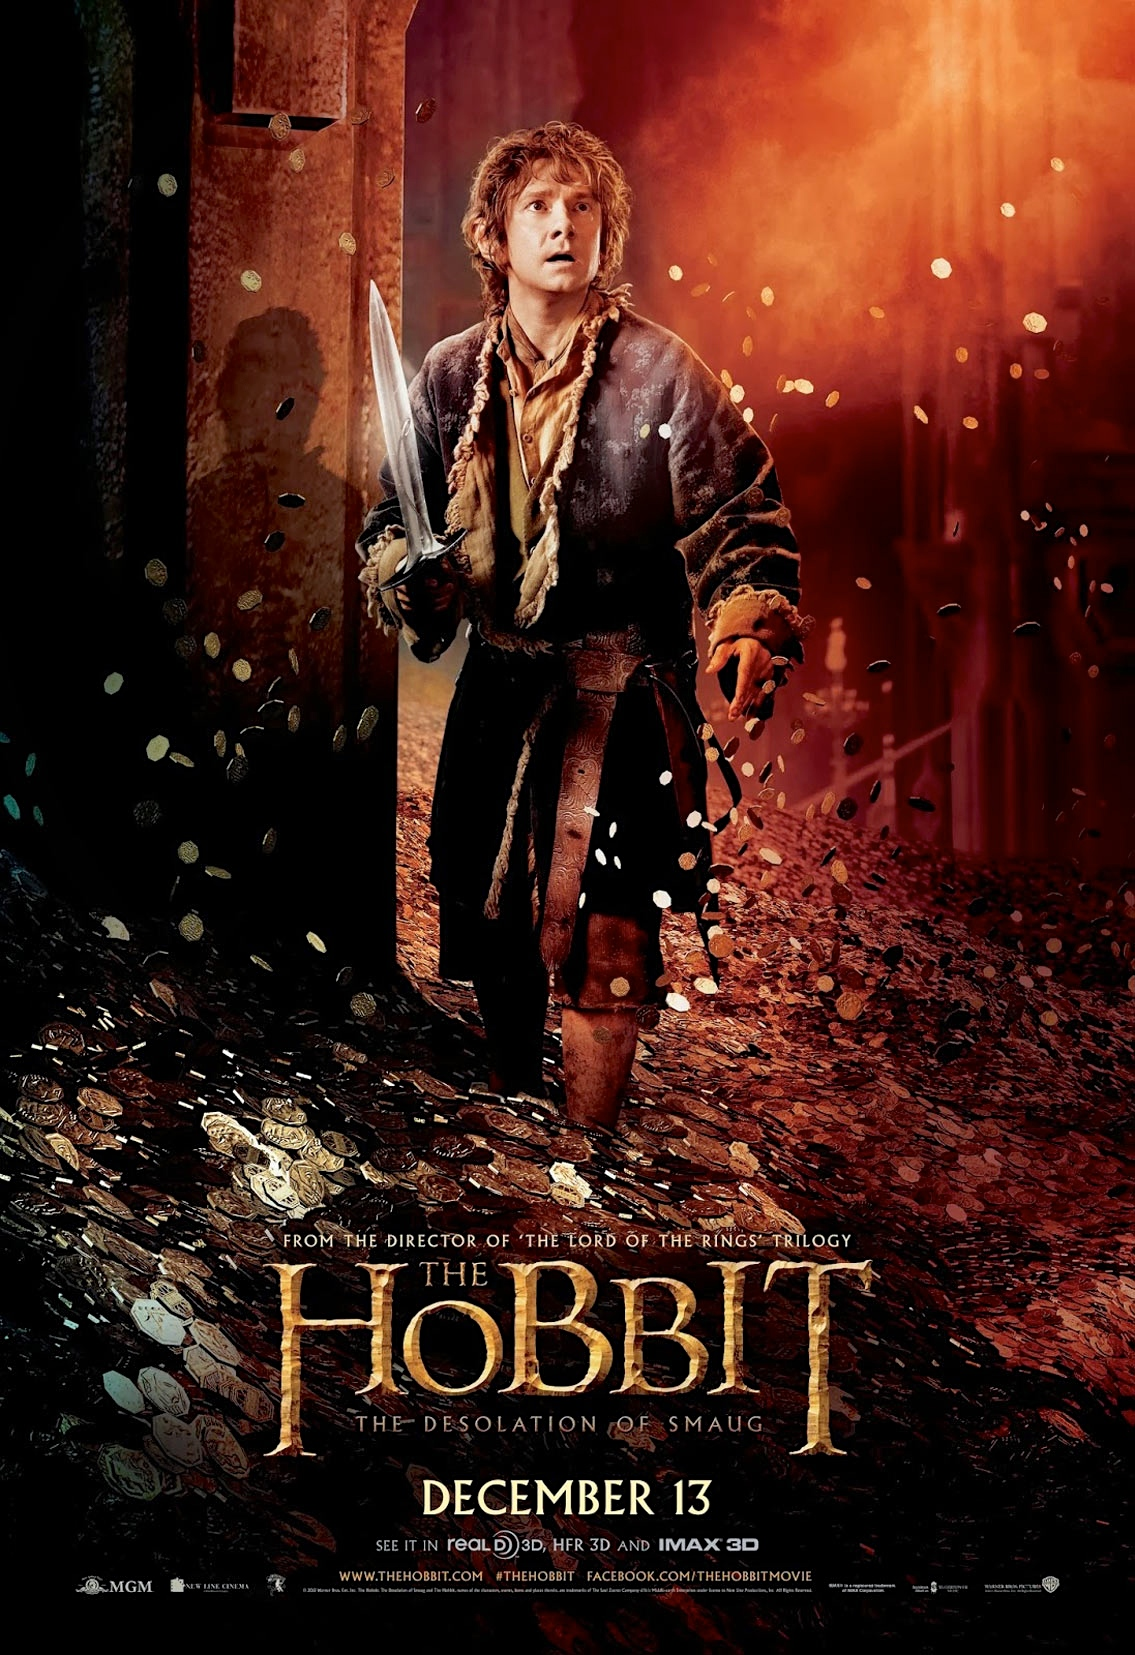 the character of the hobbit bilbo baggins in the book lord of the rings Bilbo baggins is a supporting character in the lord of the rings trilogy, and and the main protagonist in the hobbit trilogy he is a hobbit, who gets allied up with dwarves to venture past the goblins and trolls to face his first nemesis, smaug the dragon.